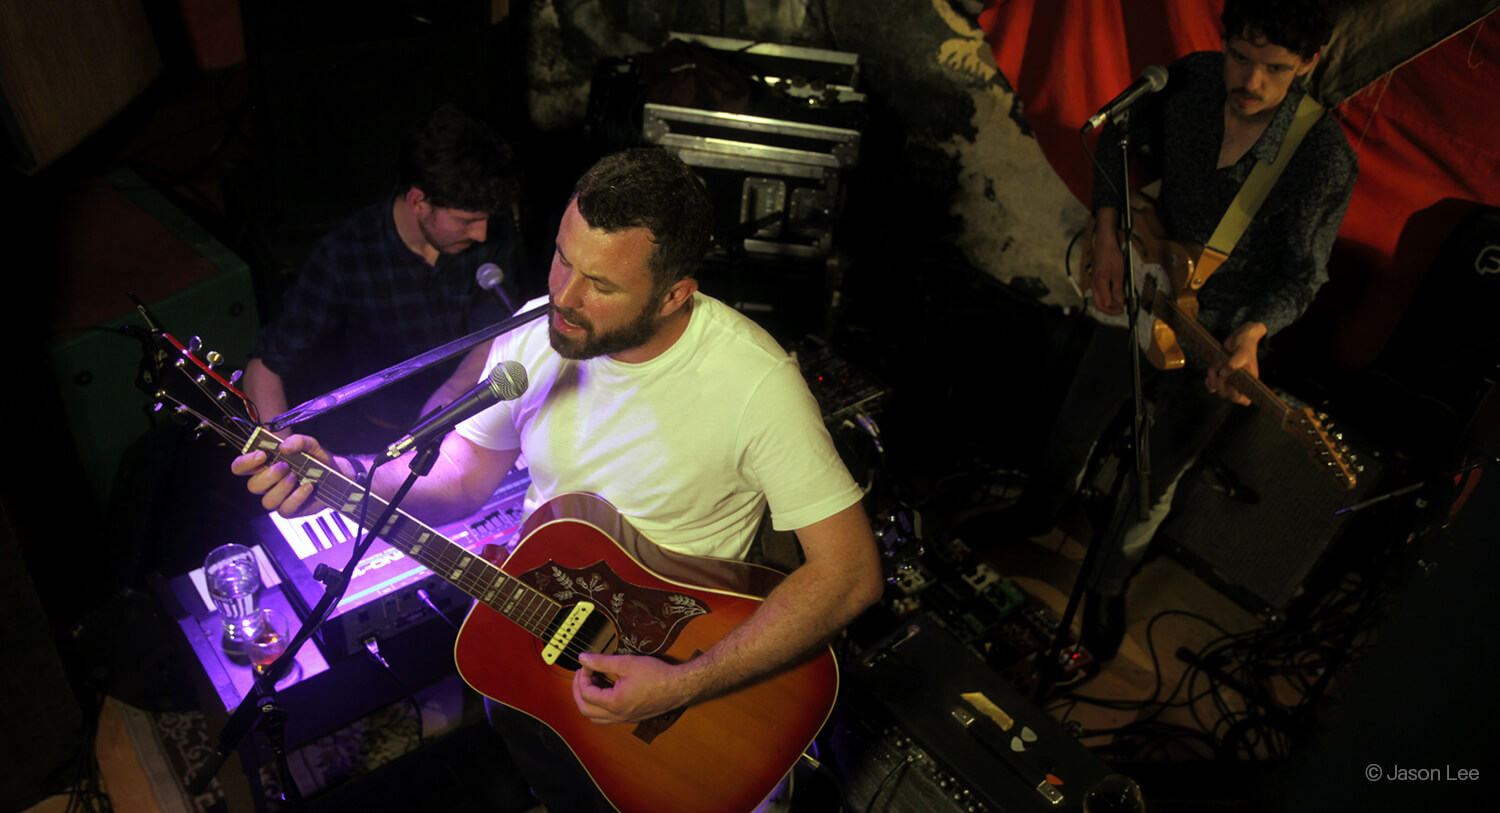 Header Image 3 - Mick Flannery